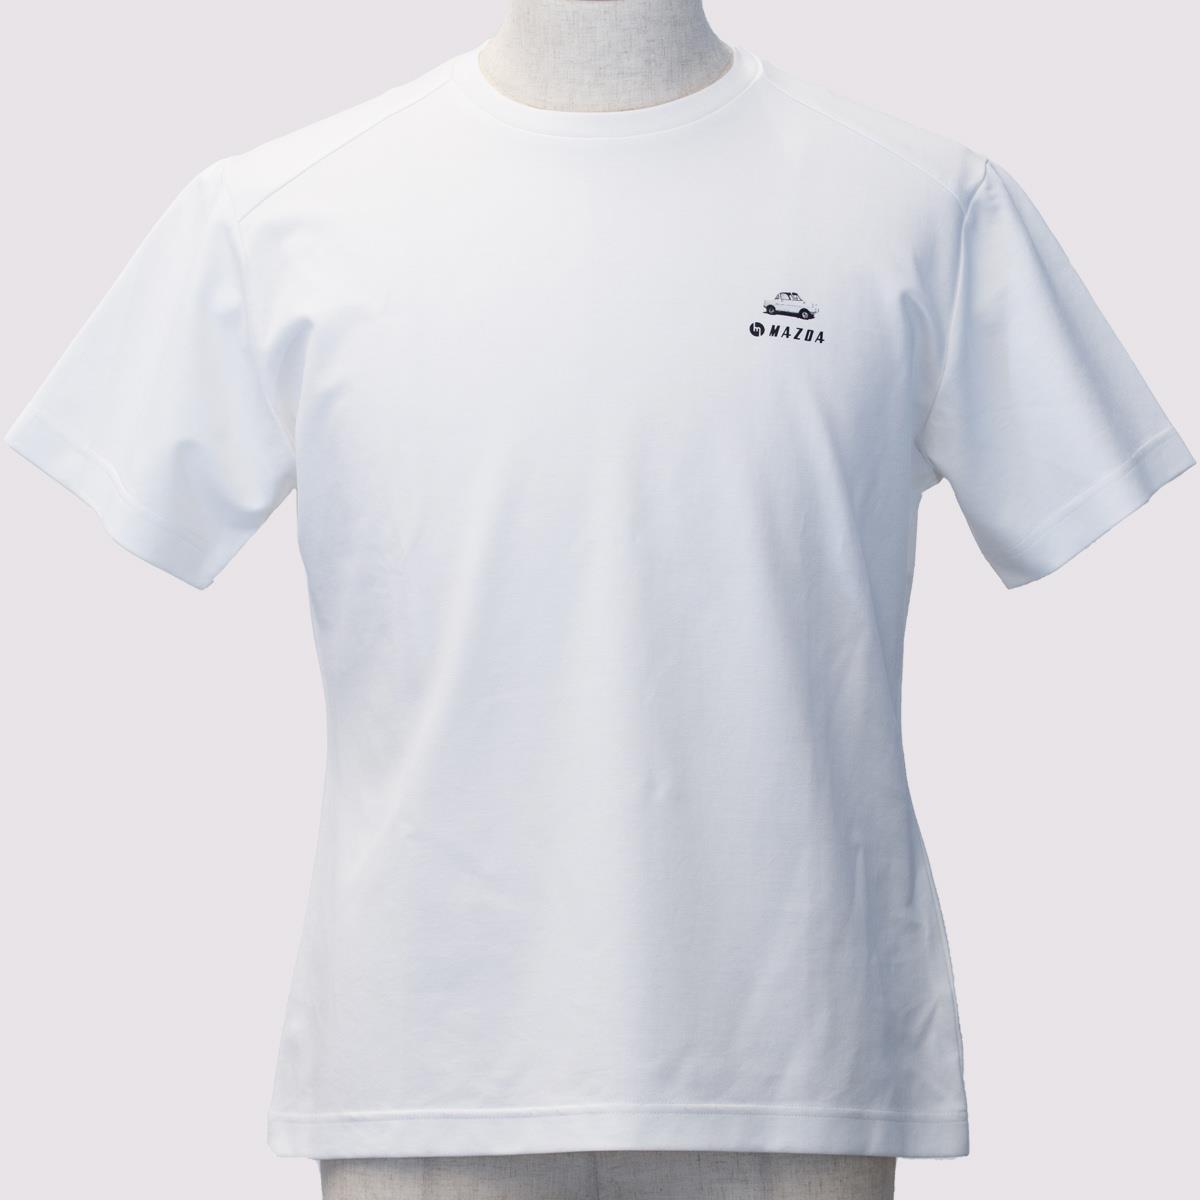 R360 COUPE Tシャツ ベーシック